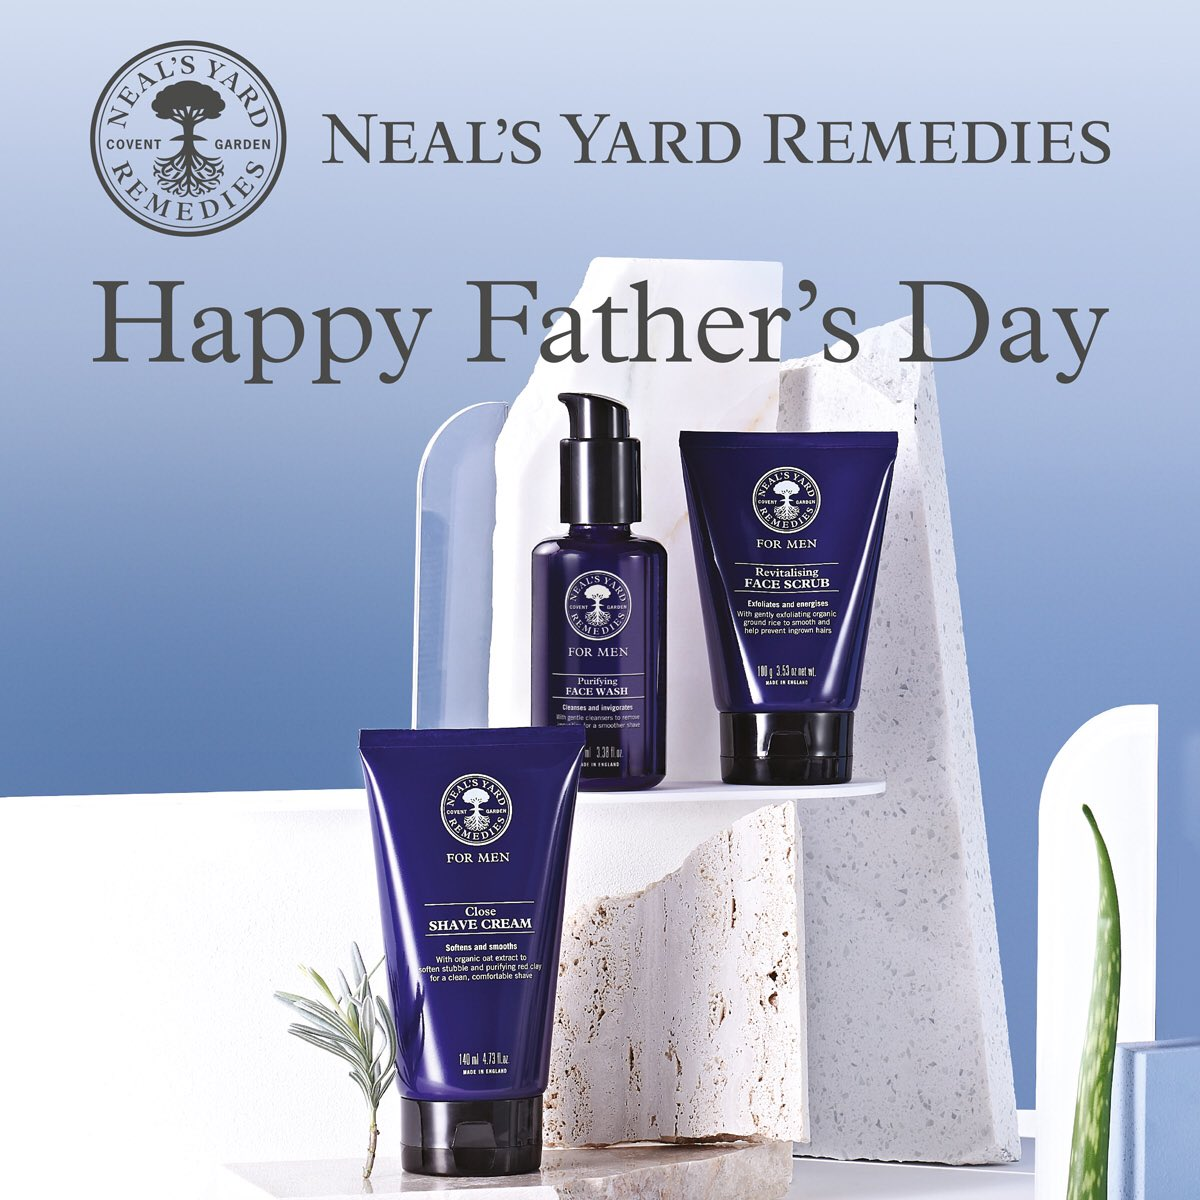 Coming soon for a dad near you. Click on the link to take a look at our popular male grooming range. Order this weekend to receive free postage. https://uk.nyrorganic.com/shop/alisonpreston/area/shop-online/category/mens/… #LockerRoom #mensgrooming #malemodel #Organicskincare #bathtime #MensSkincare pic.twitter.com/2xyE02luZJ